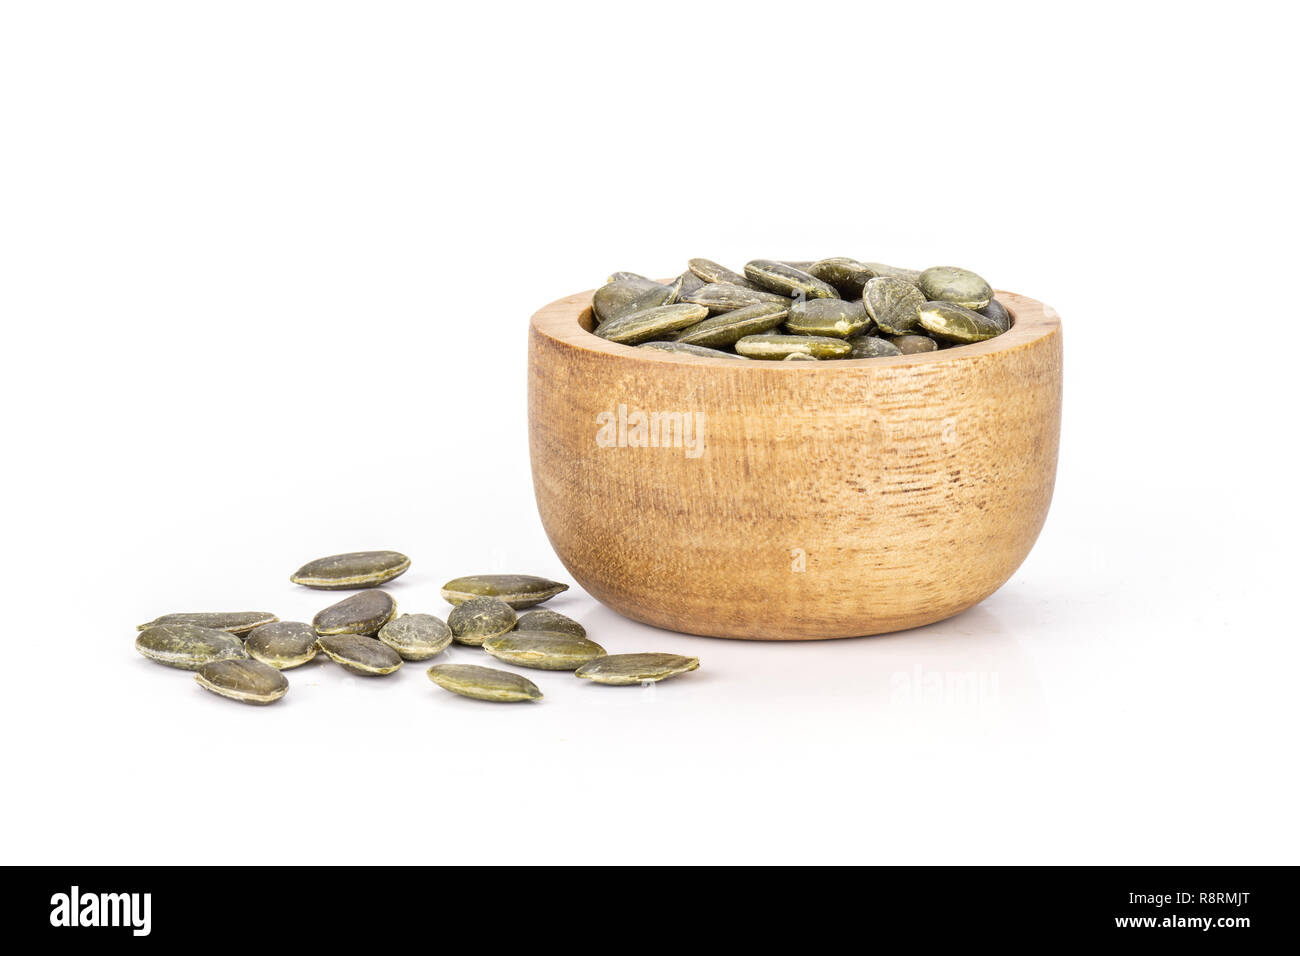 Lot of whole raw hulled pumpkin seeds with wooden bowl isolated on white background Stock Photo